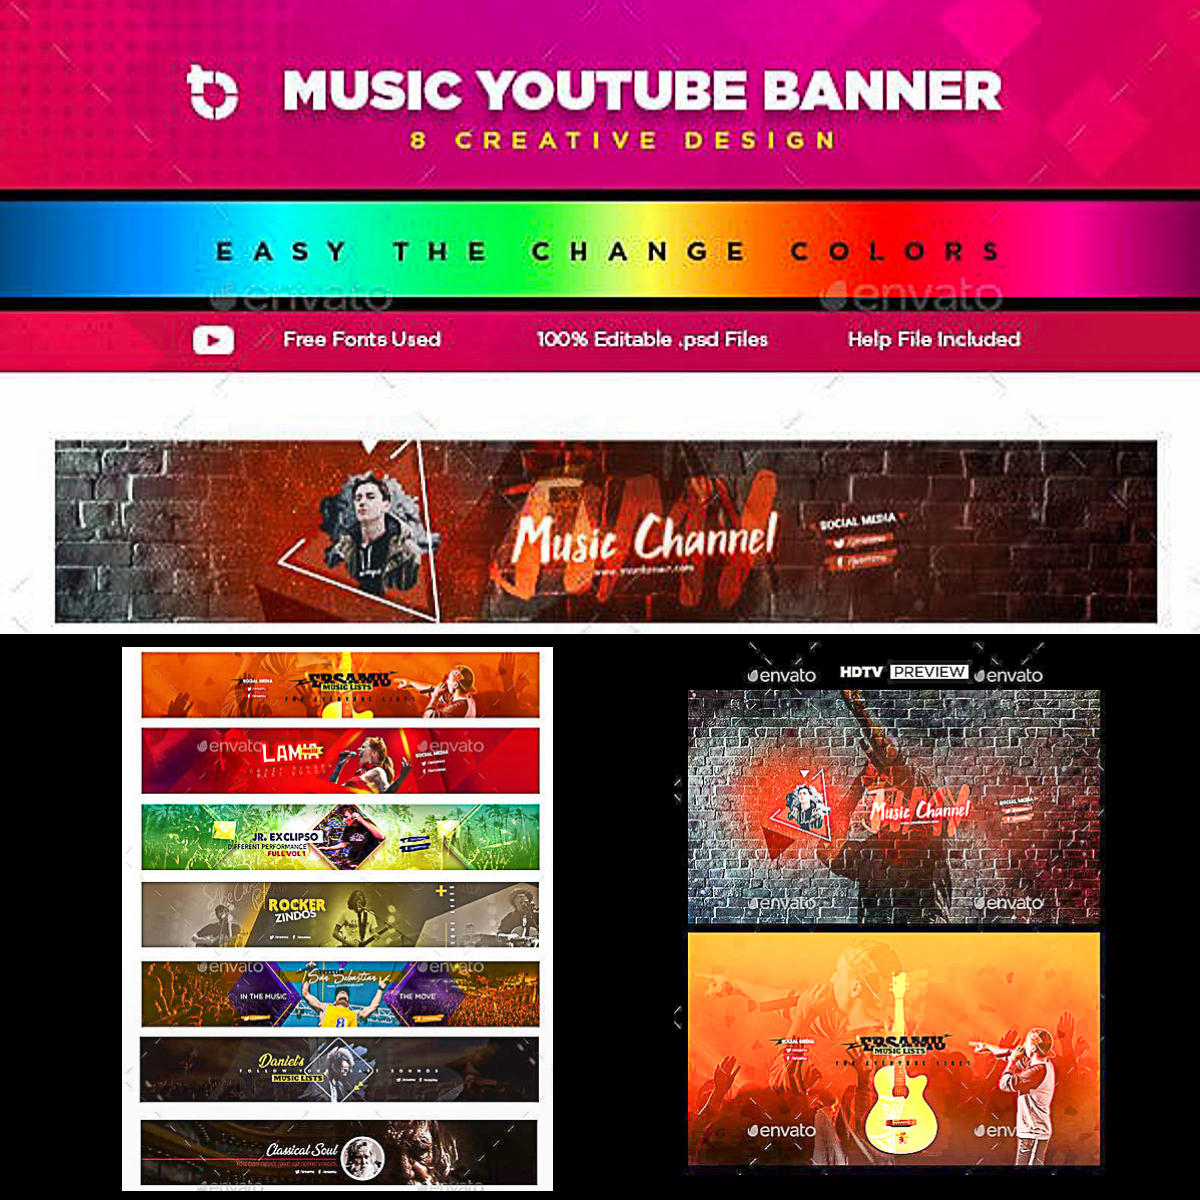 Music Youtube Banner Template Free Download